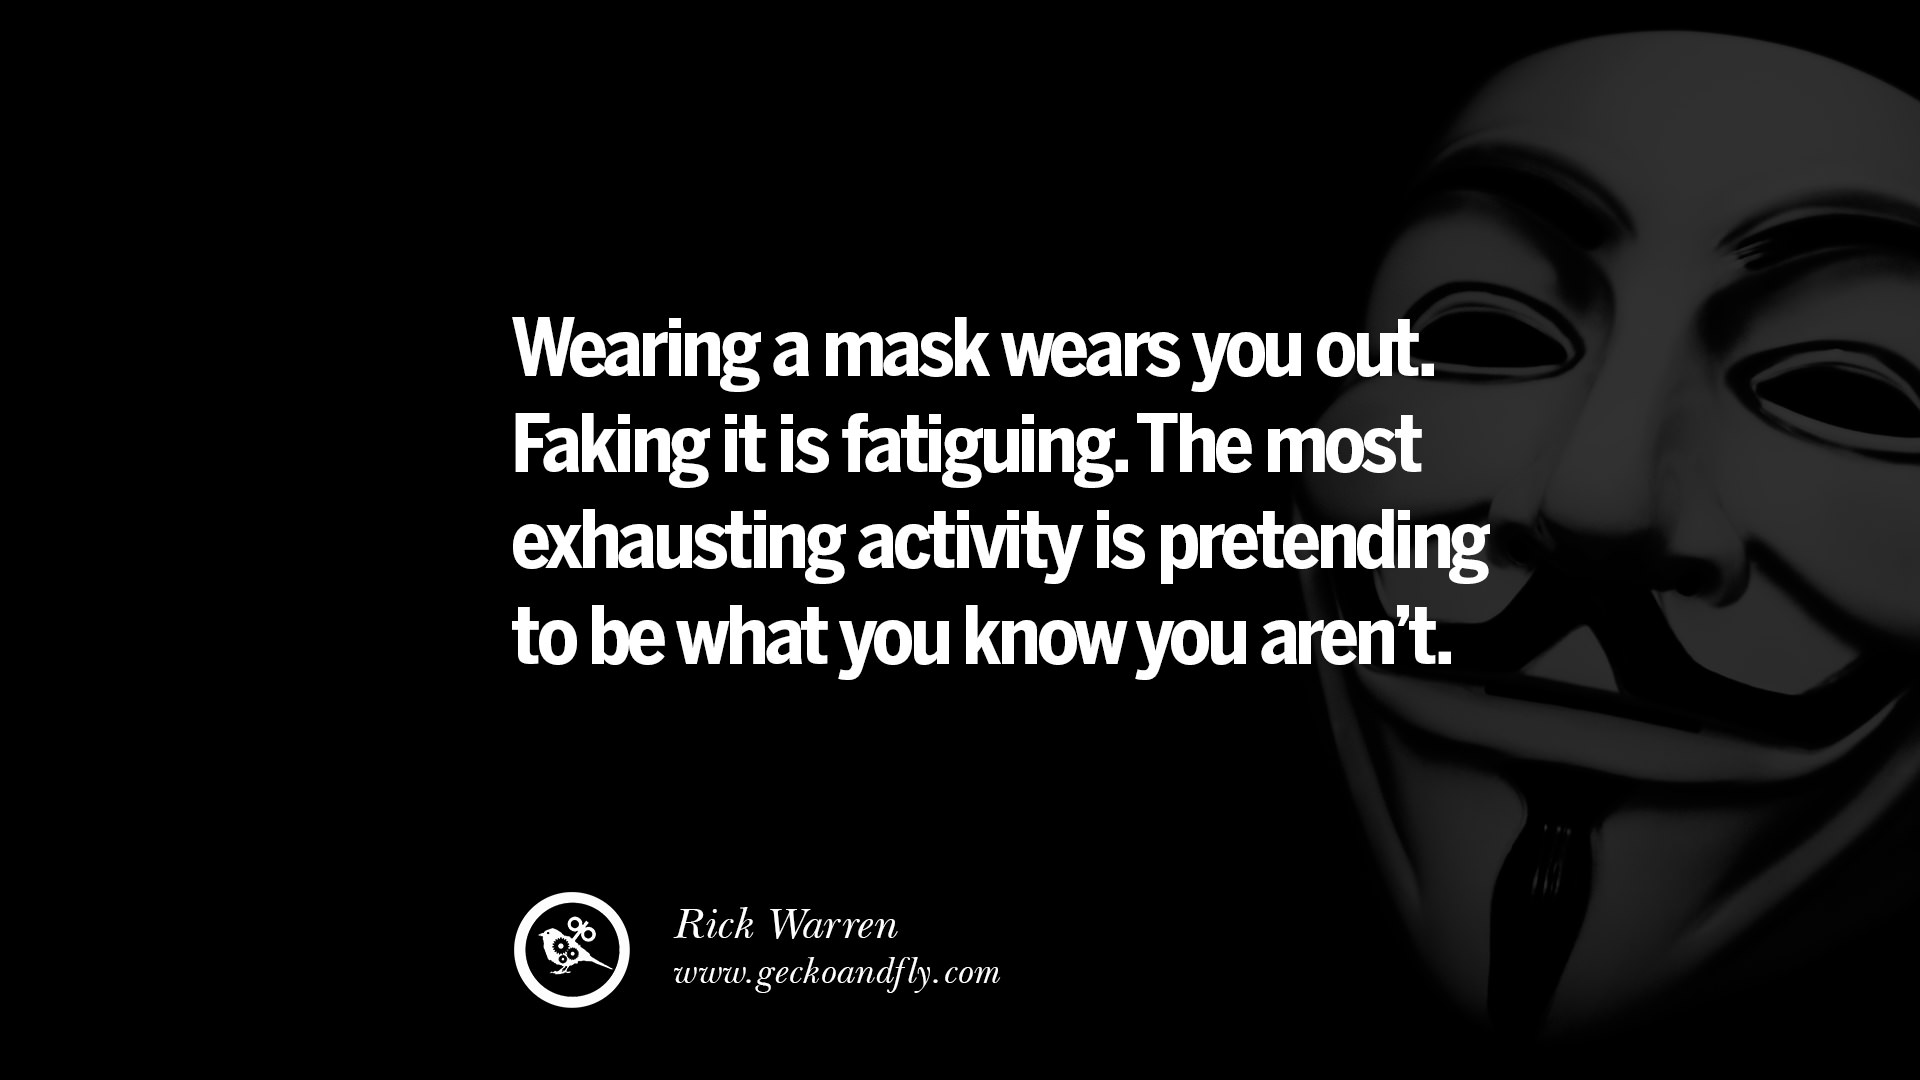 Wearing a mask wears you out Faking it is fatiguing The most exhausting activity